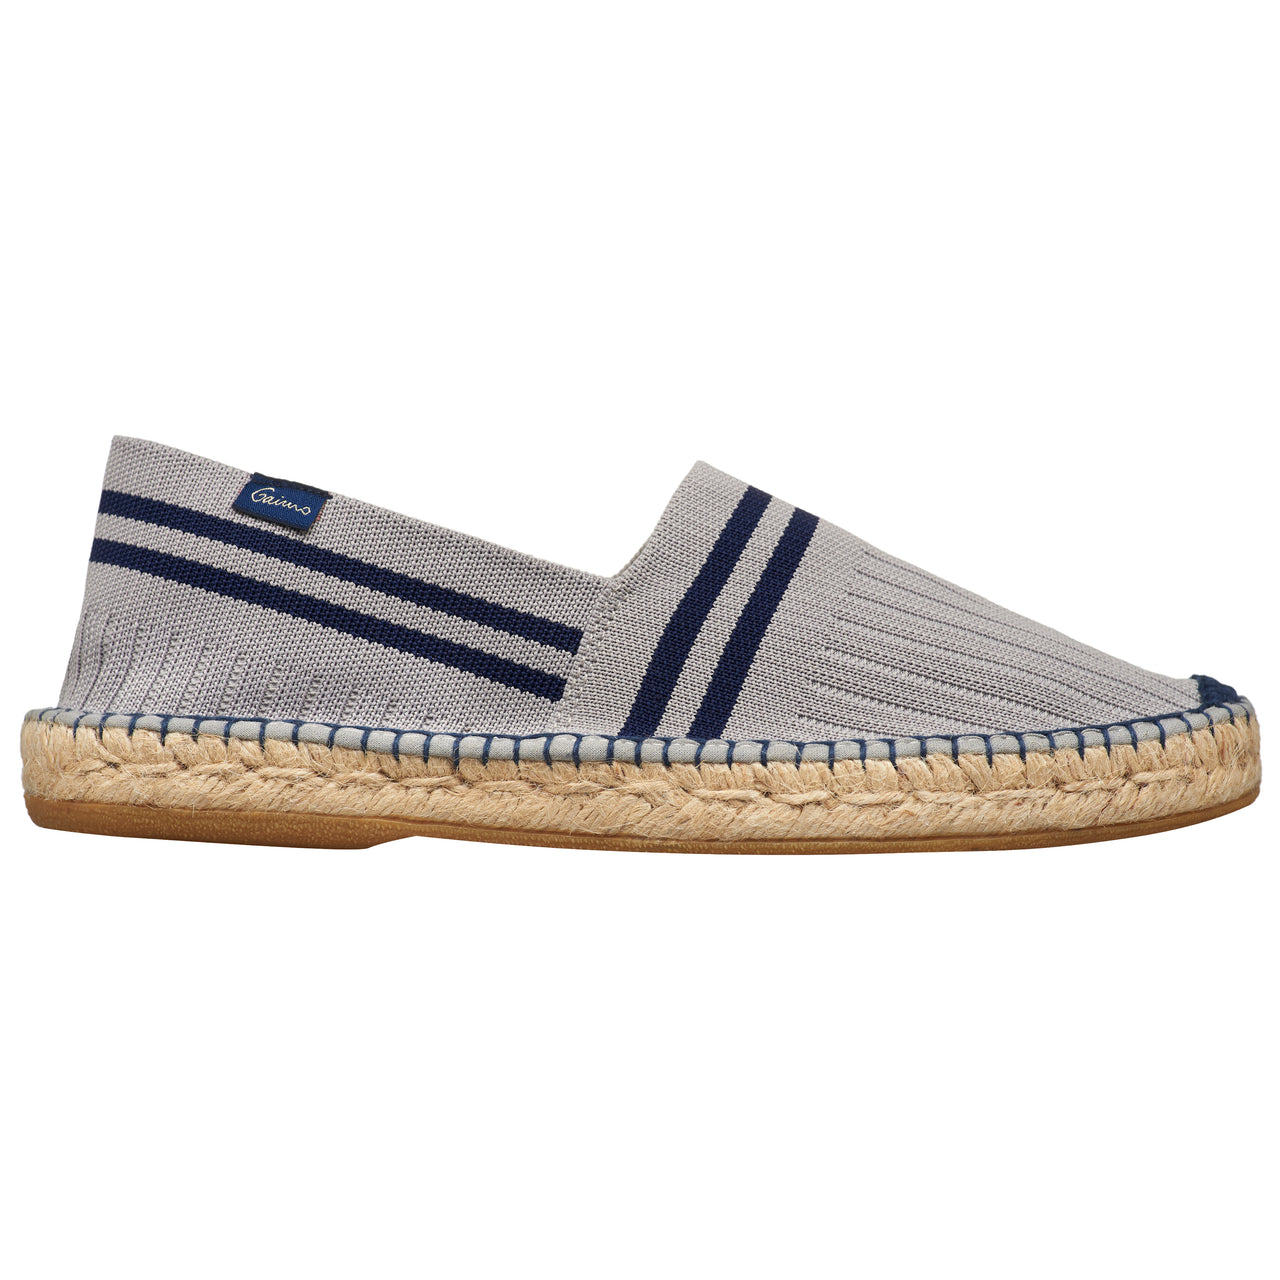 WISH GREY Men espadrilles - Badt and Co - singapore